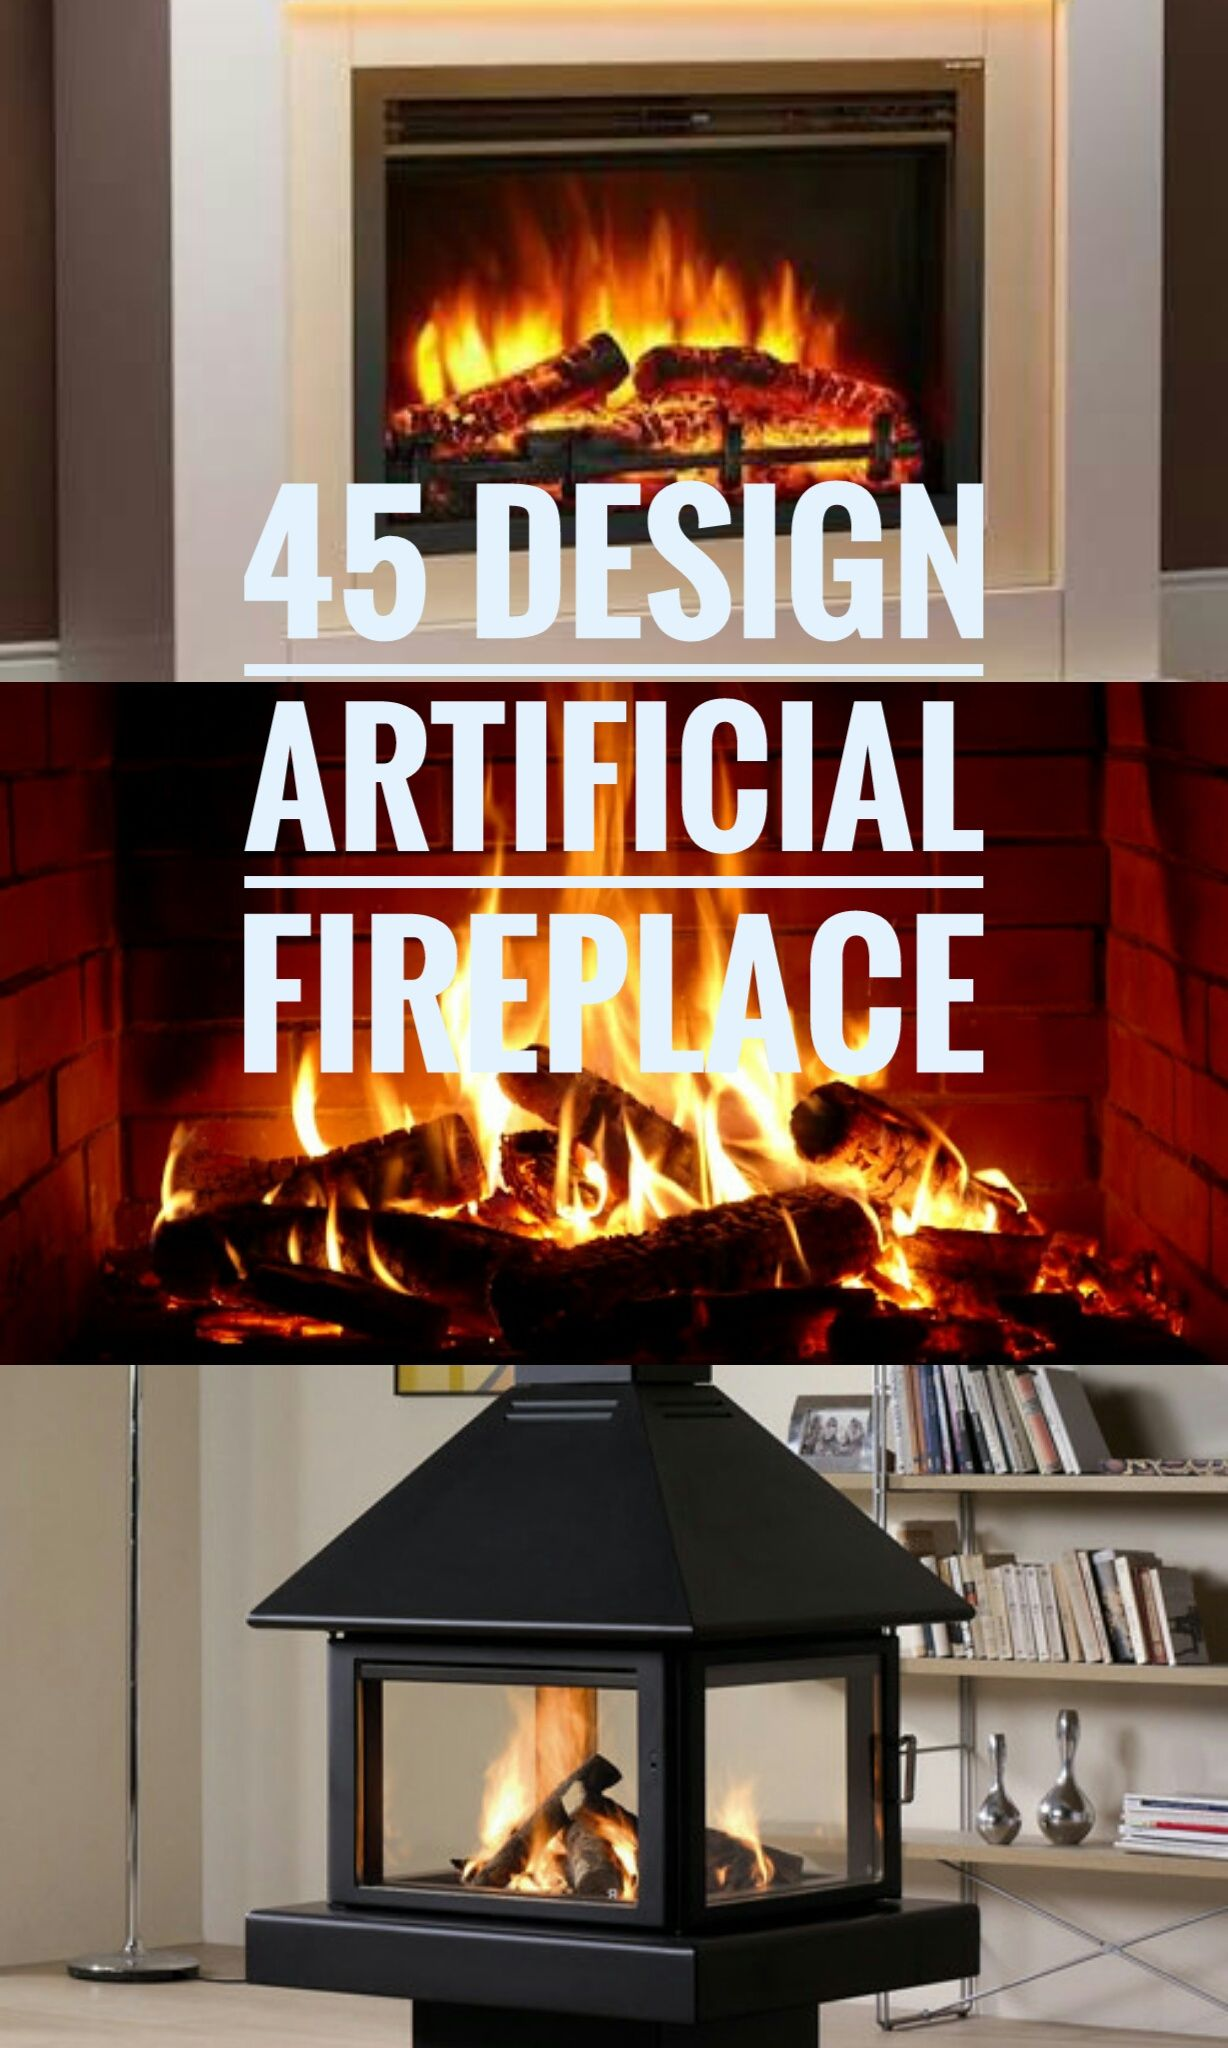 Buy Electric Fireplace Built In Gas Fireplace Brick Fireplace